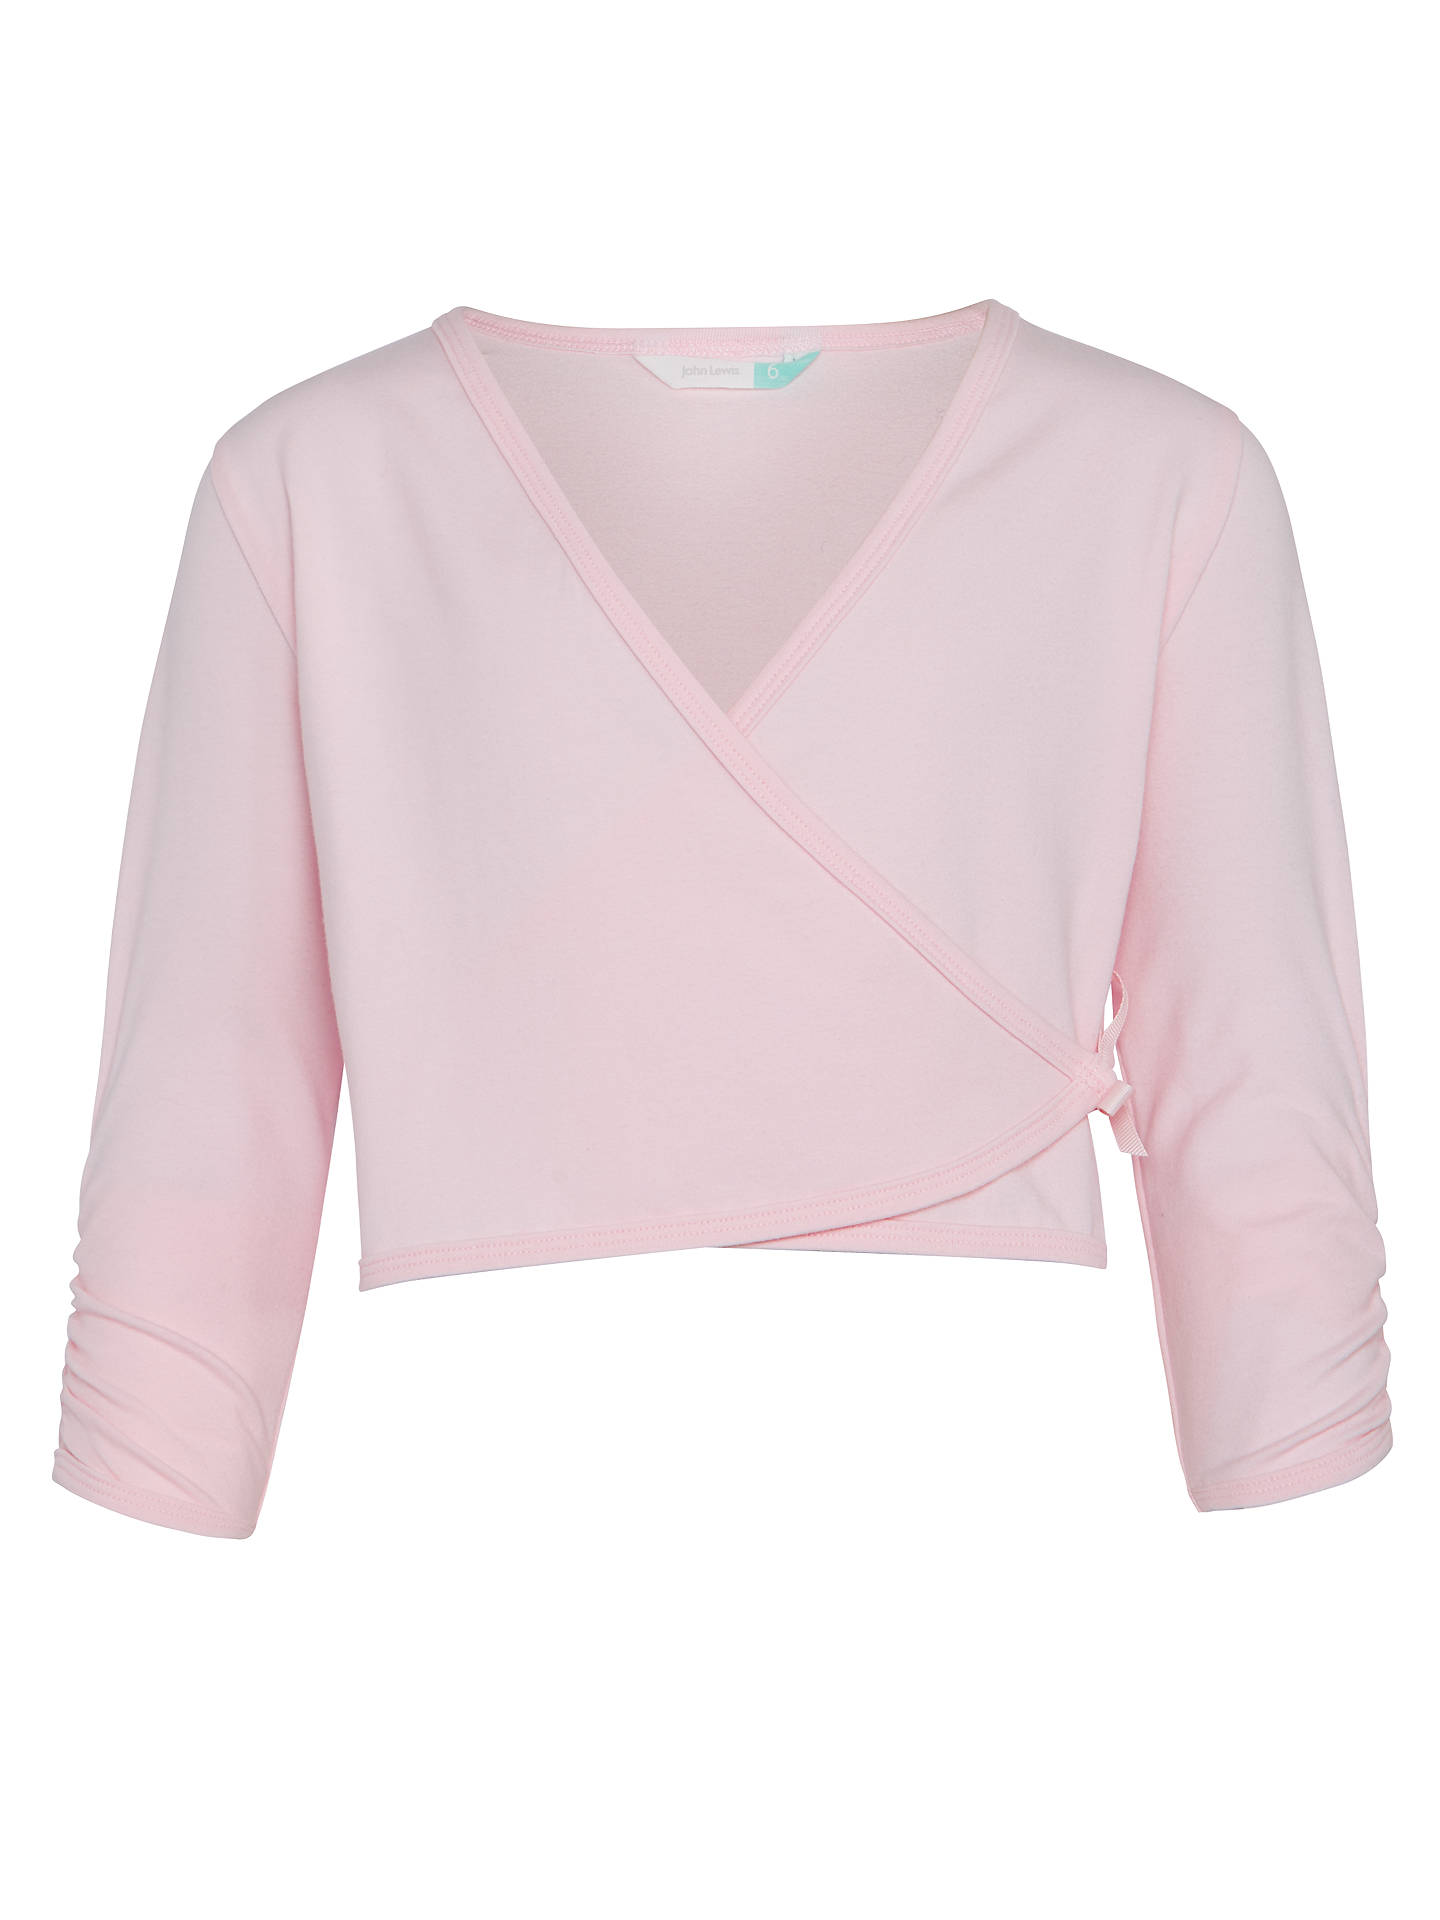 BuyJohn Lewis & Partners Girls' Ballet Wrap Cardigan, Pink, 2 years Online at johnlewis.com